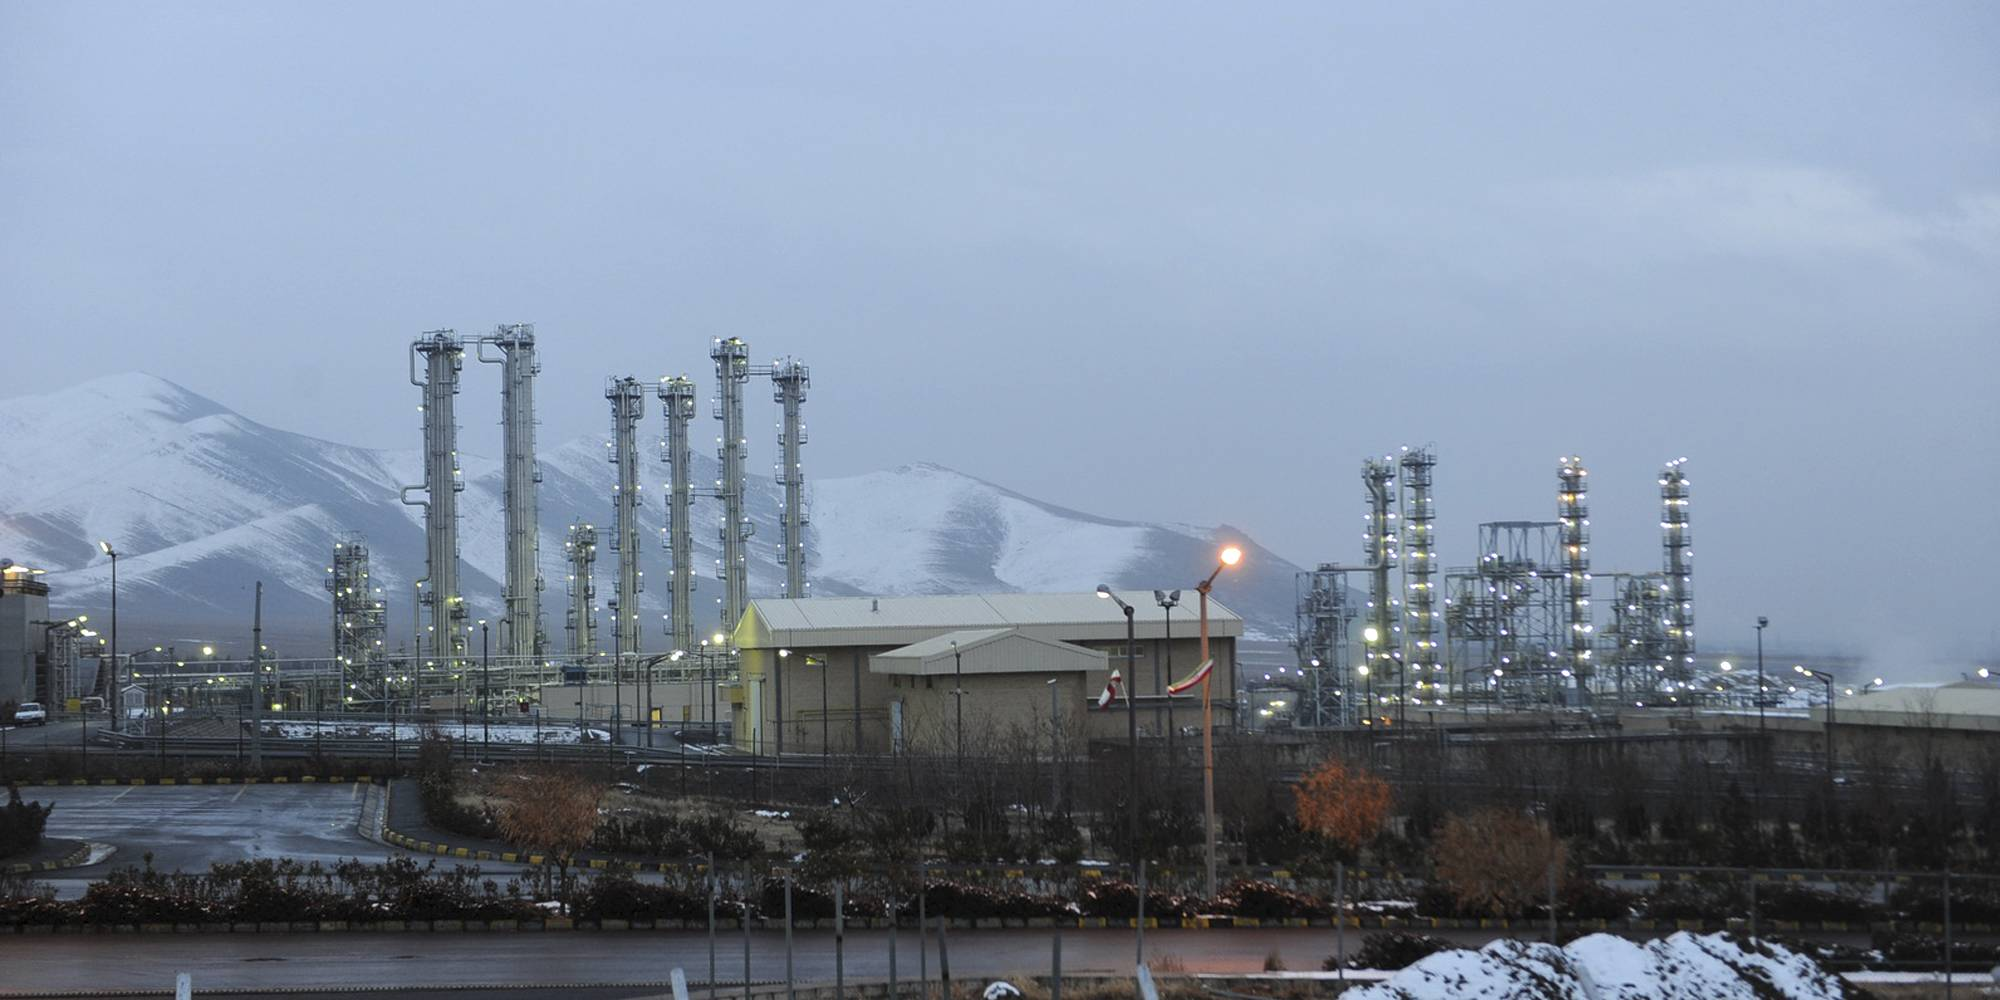 image of Iran's heavy water nuclear facility near Arak, Iran.